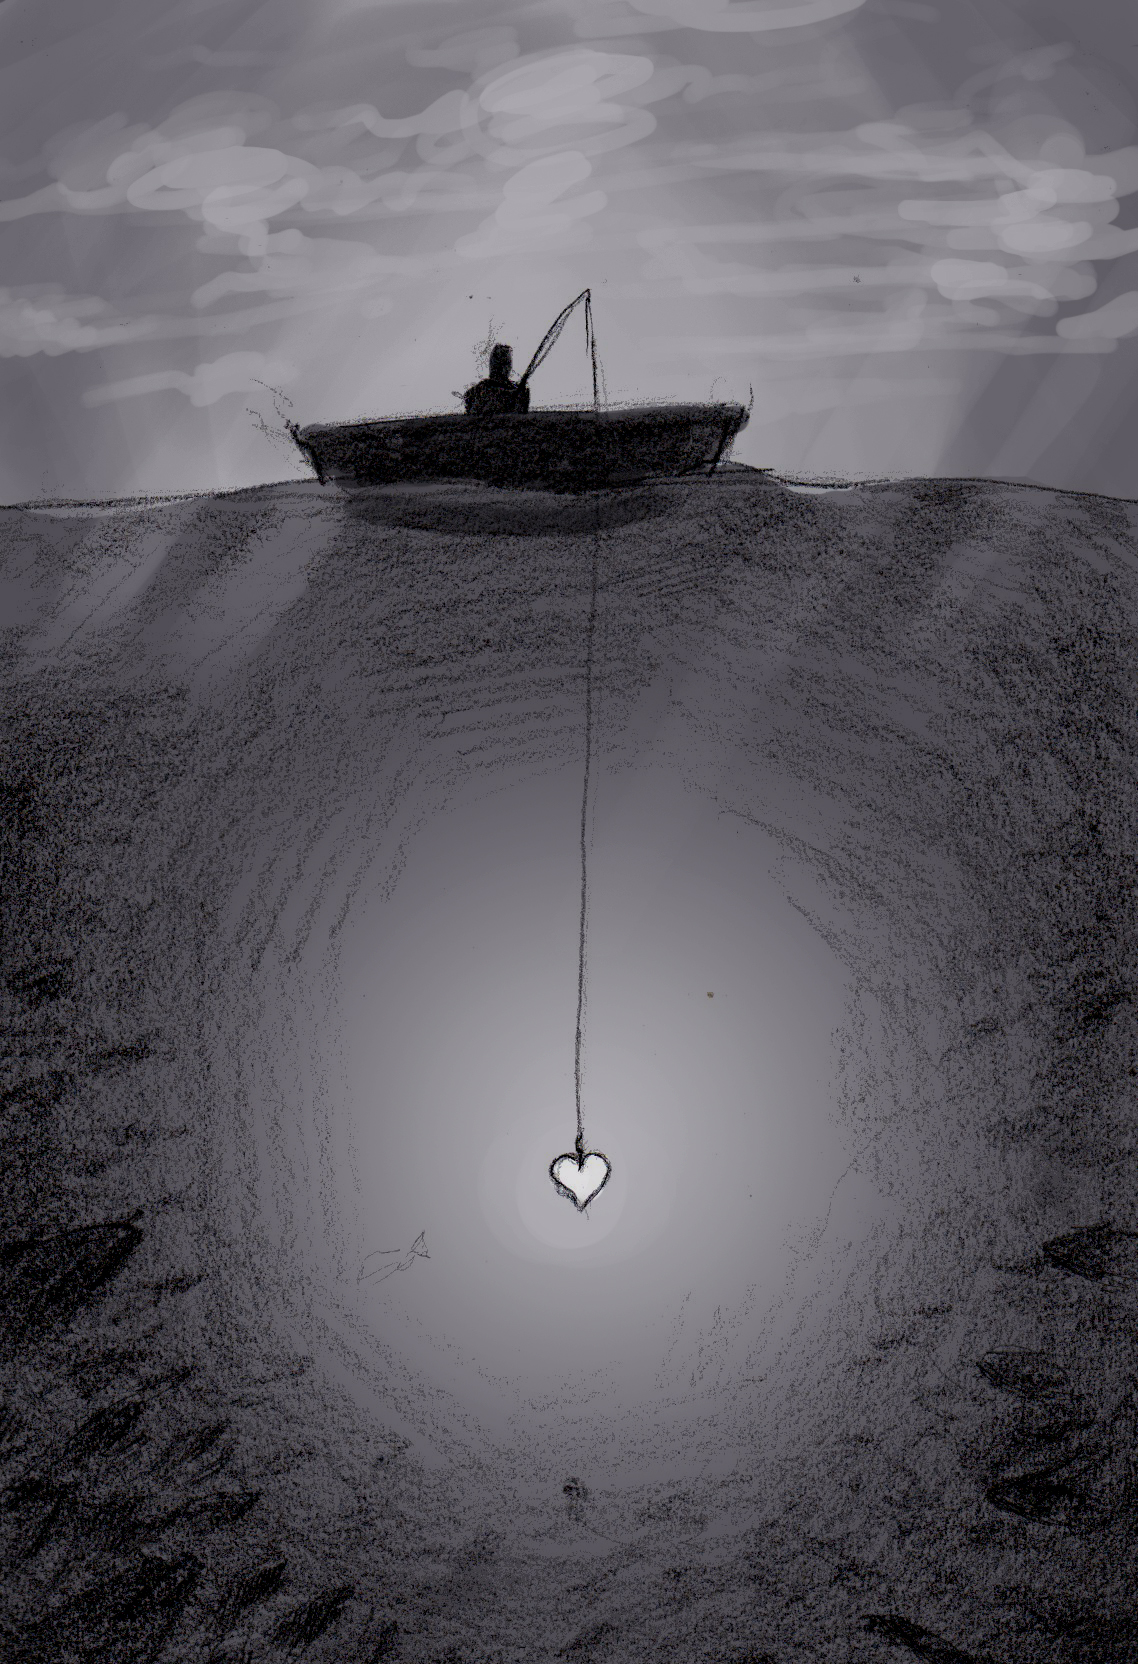 Online dating site fish in the sea